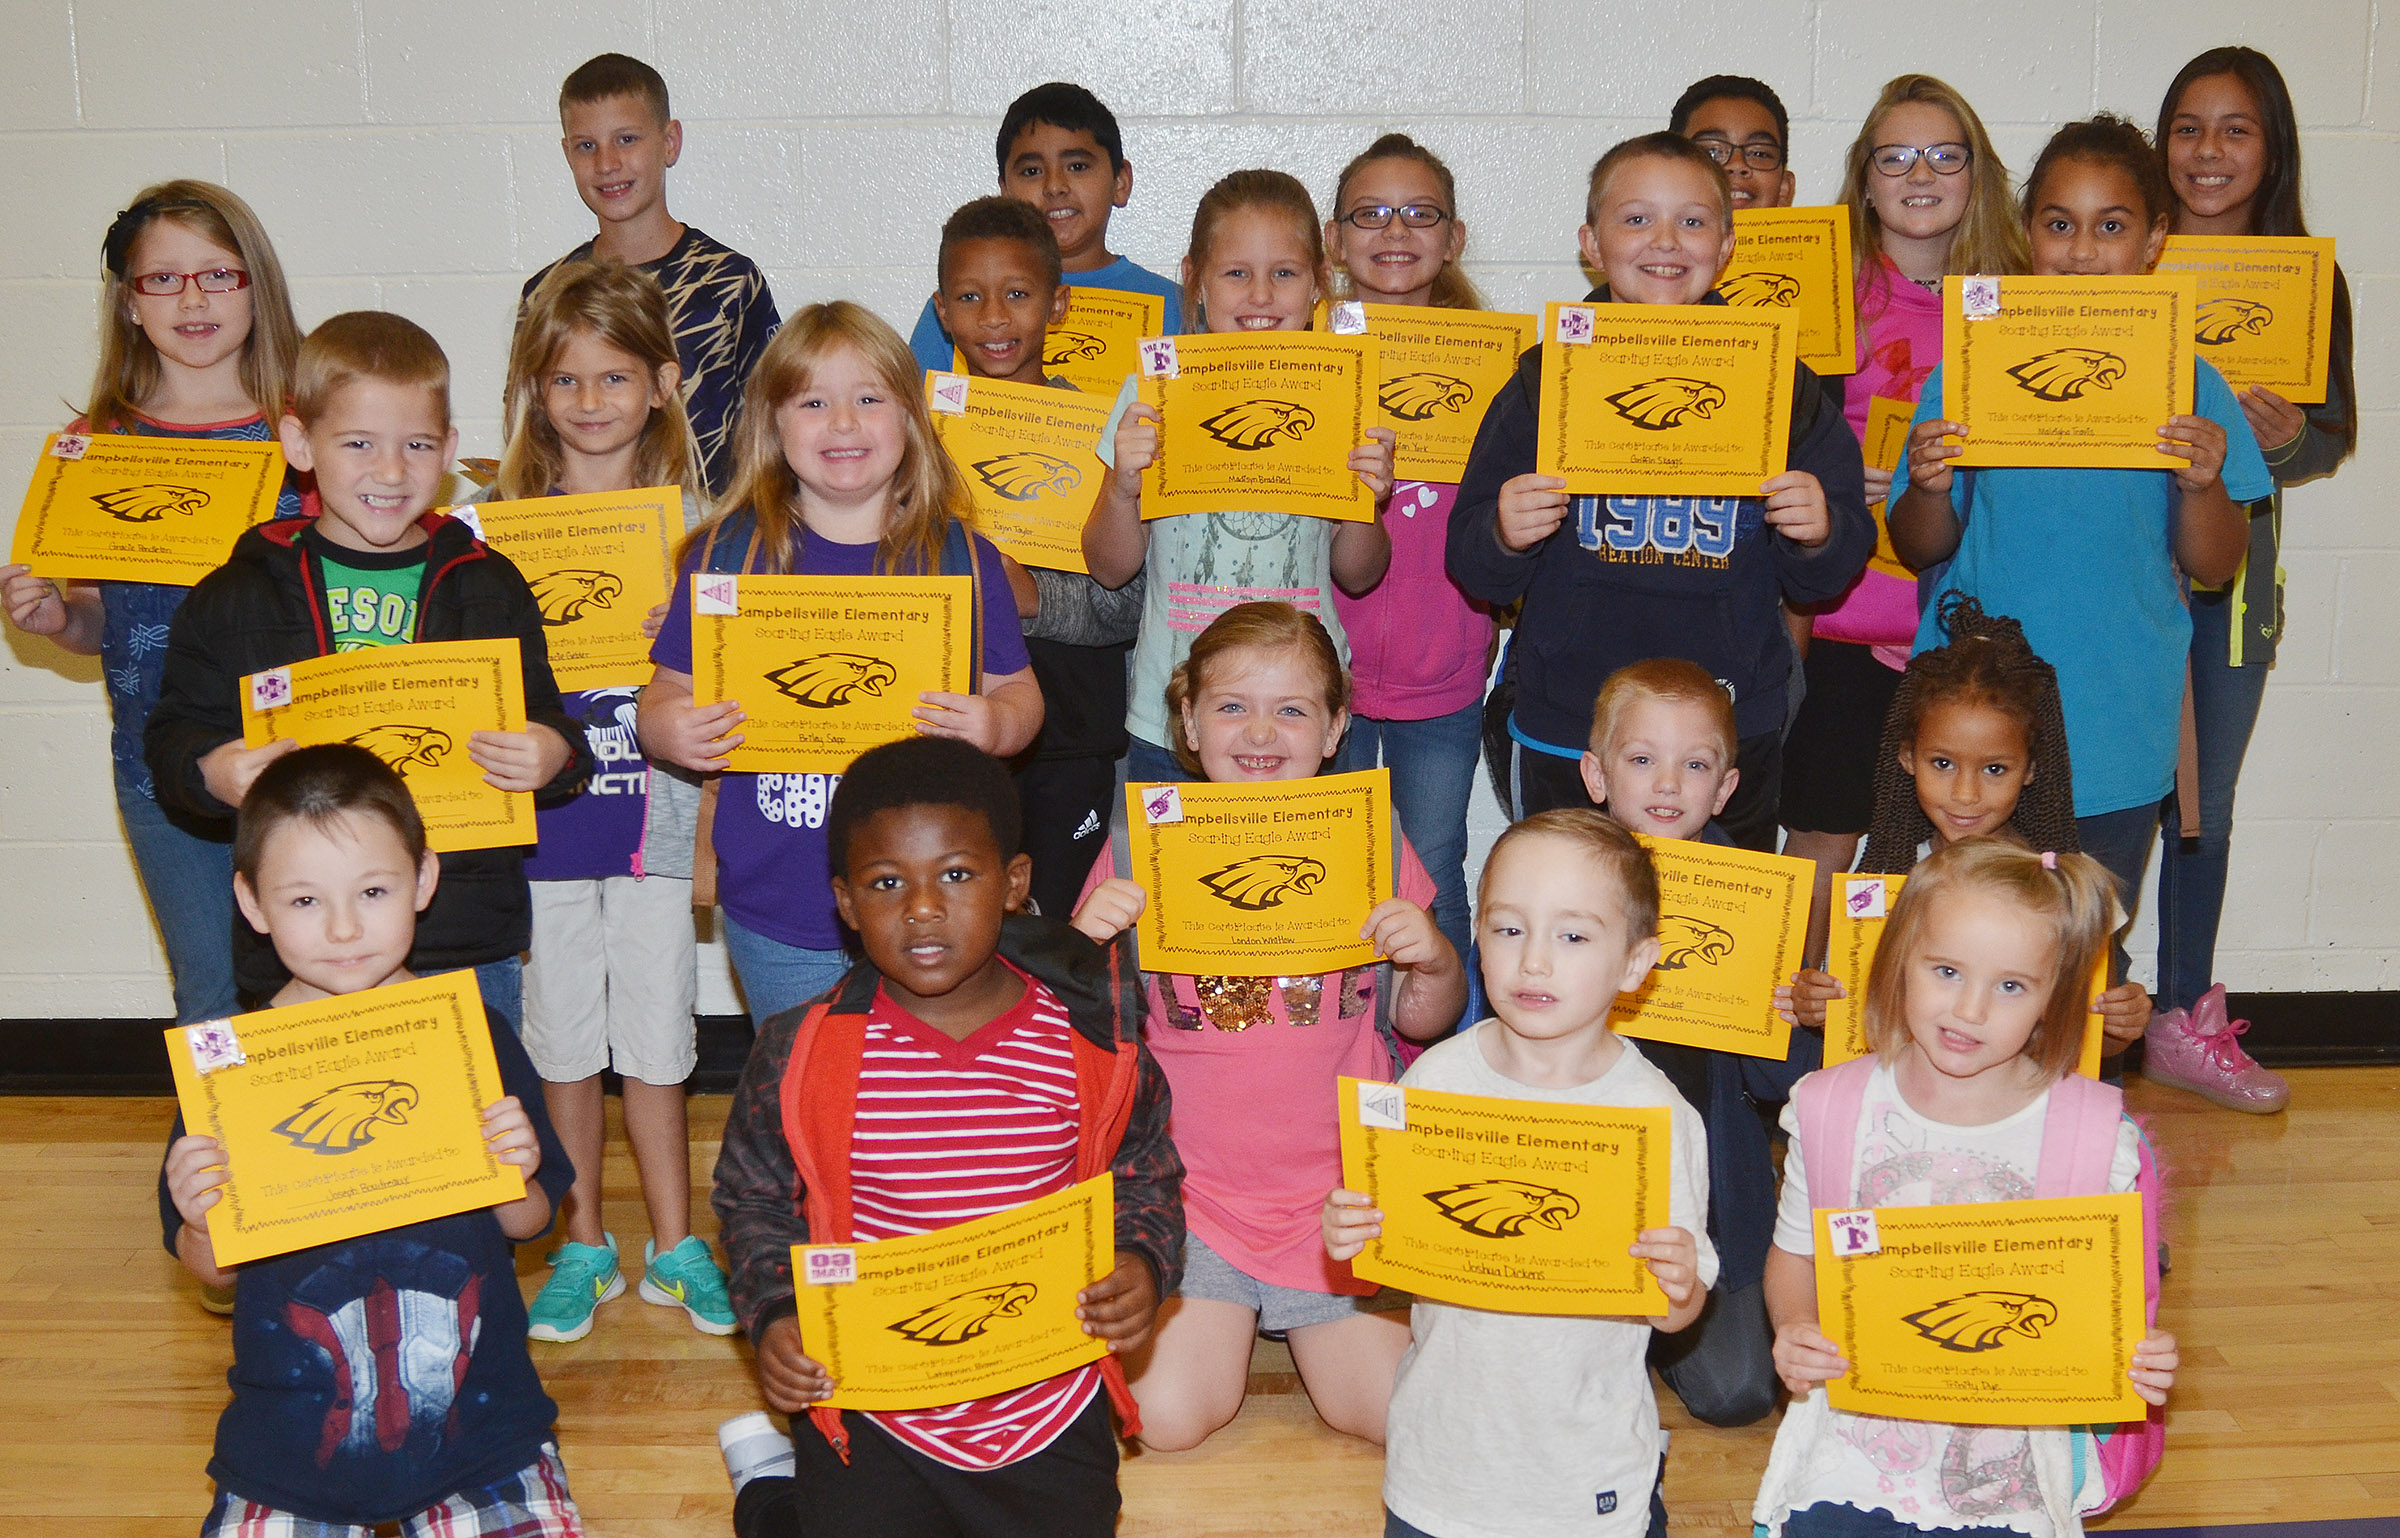 From left, front, are second-grader Joseph Boudreaux and kindergarteners LaTayvion Brown, Joshua Dickens and Trinity Dye. Second row, first-graders Mason Edwards and Briley Sapp, second-grader London Whitlow, third-grader Evan Cundiff and first-grader Aleja Taylor. Third row, fourth-grader Gracie Pendleton, first-grader Gracie Gebler, third-grader Rajon Taylor, fourth-grader Madisyn Bradfield, third-grader Griffin Skaggs and second-grader Maleigha Travis. Back, fifth-grader Rowan Petett, fourth-graders Cody Tamez and Vivian York and fifth-graders Gabriel Noyola, Lilyan Murphy and Marissa Segura.